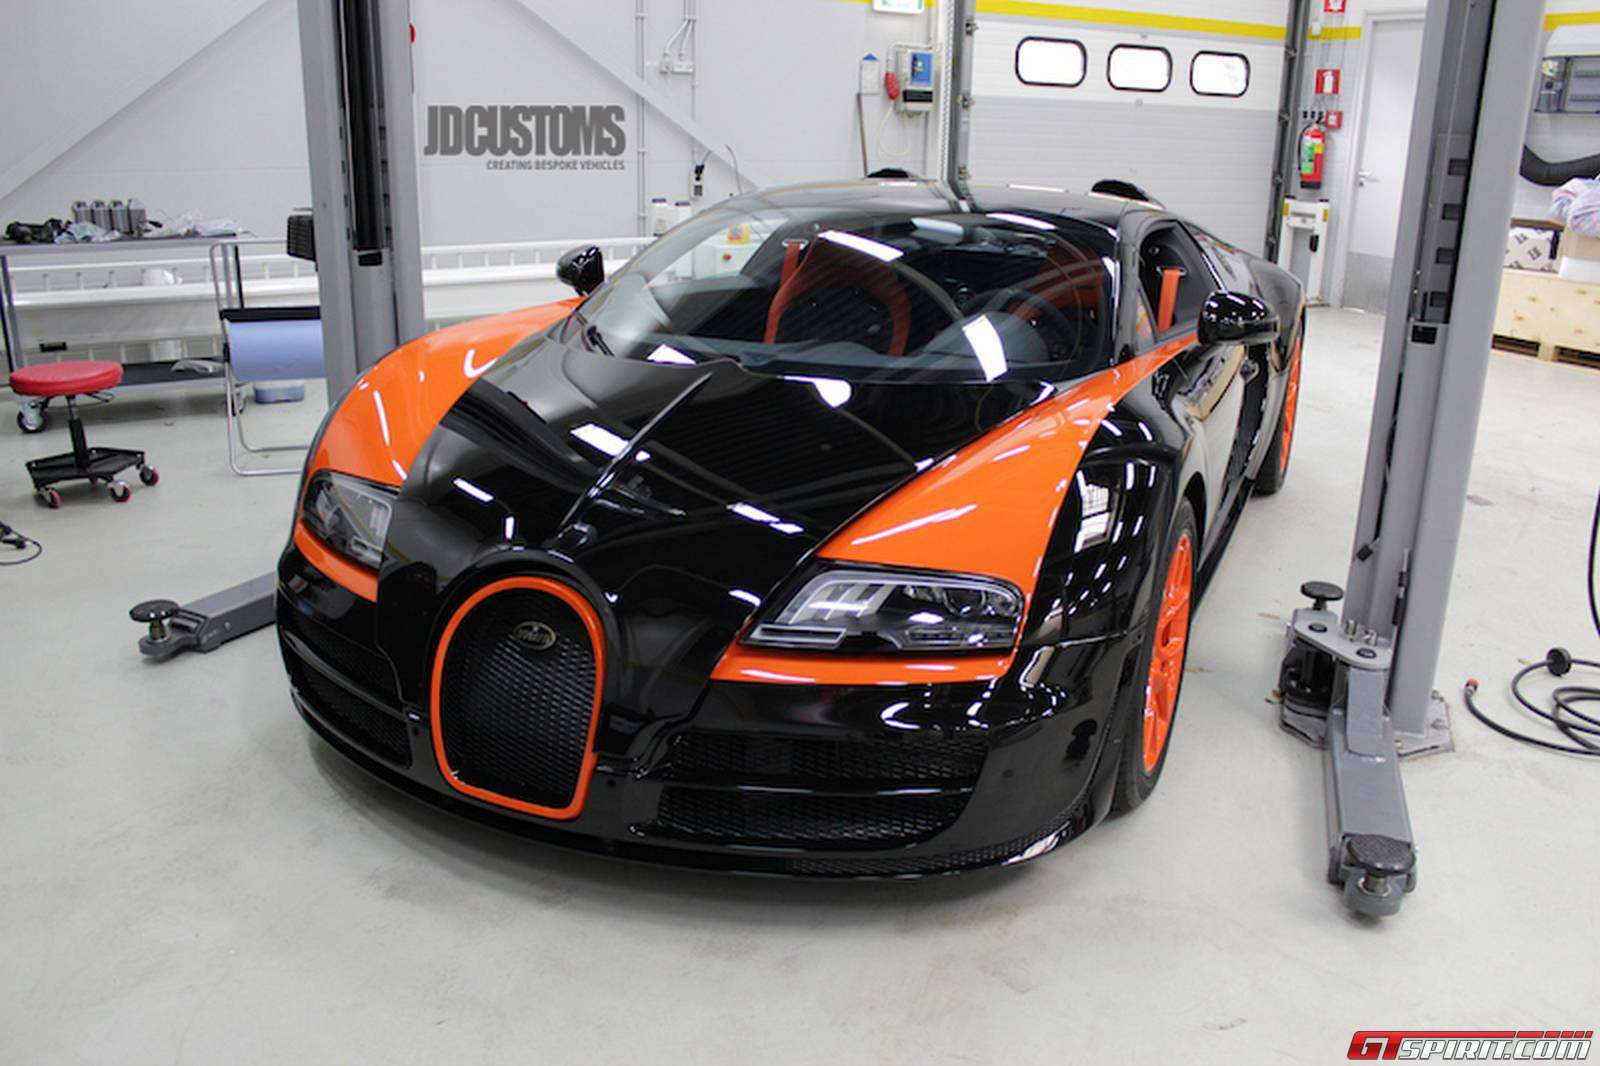 bugatti veyron grand sport vitesse wrc edition at jd customs gtspirit. Black Bedroom Furniture Sets. Home Design Ideas